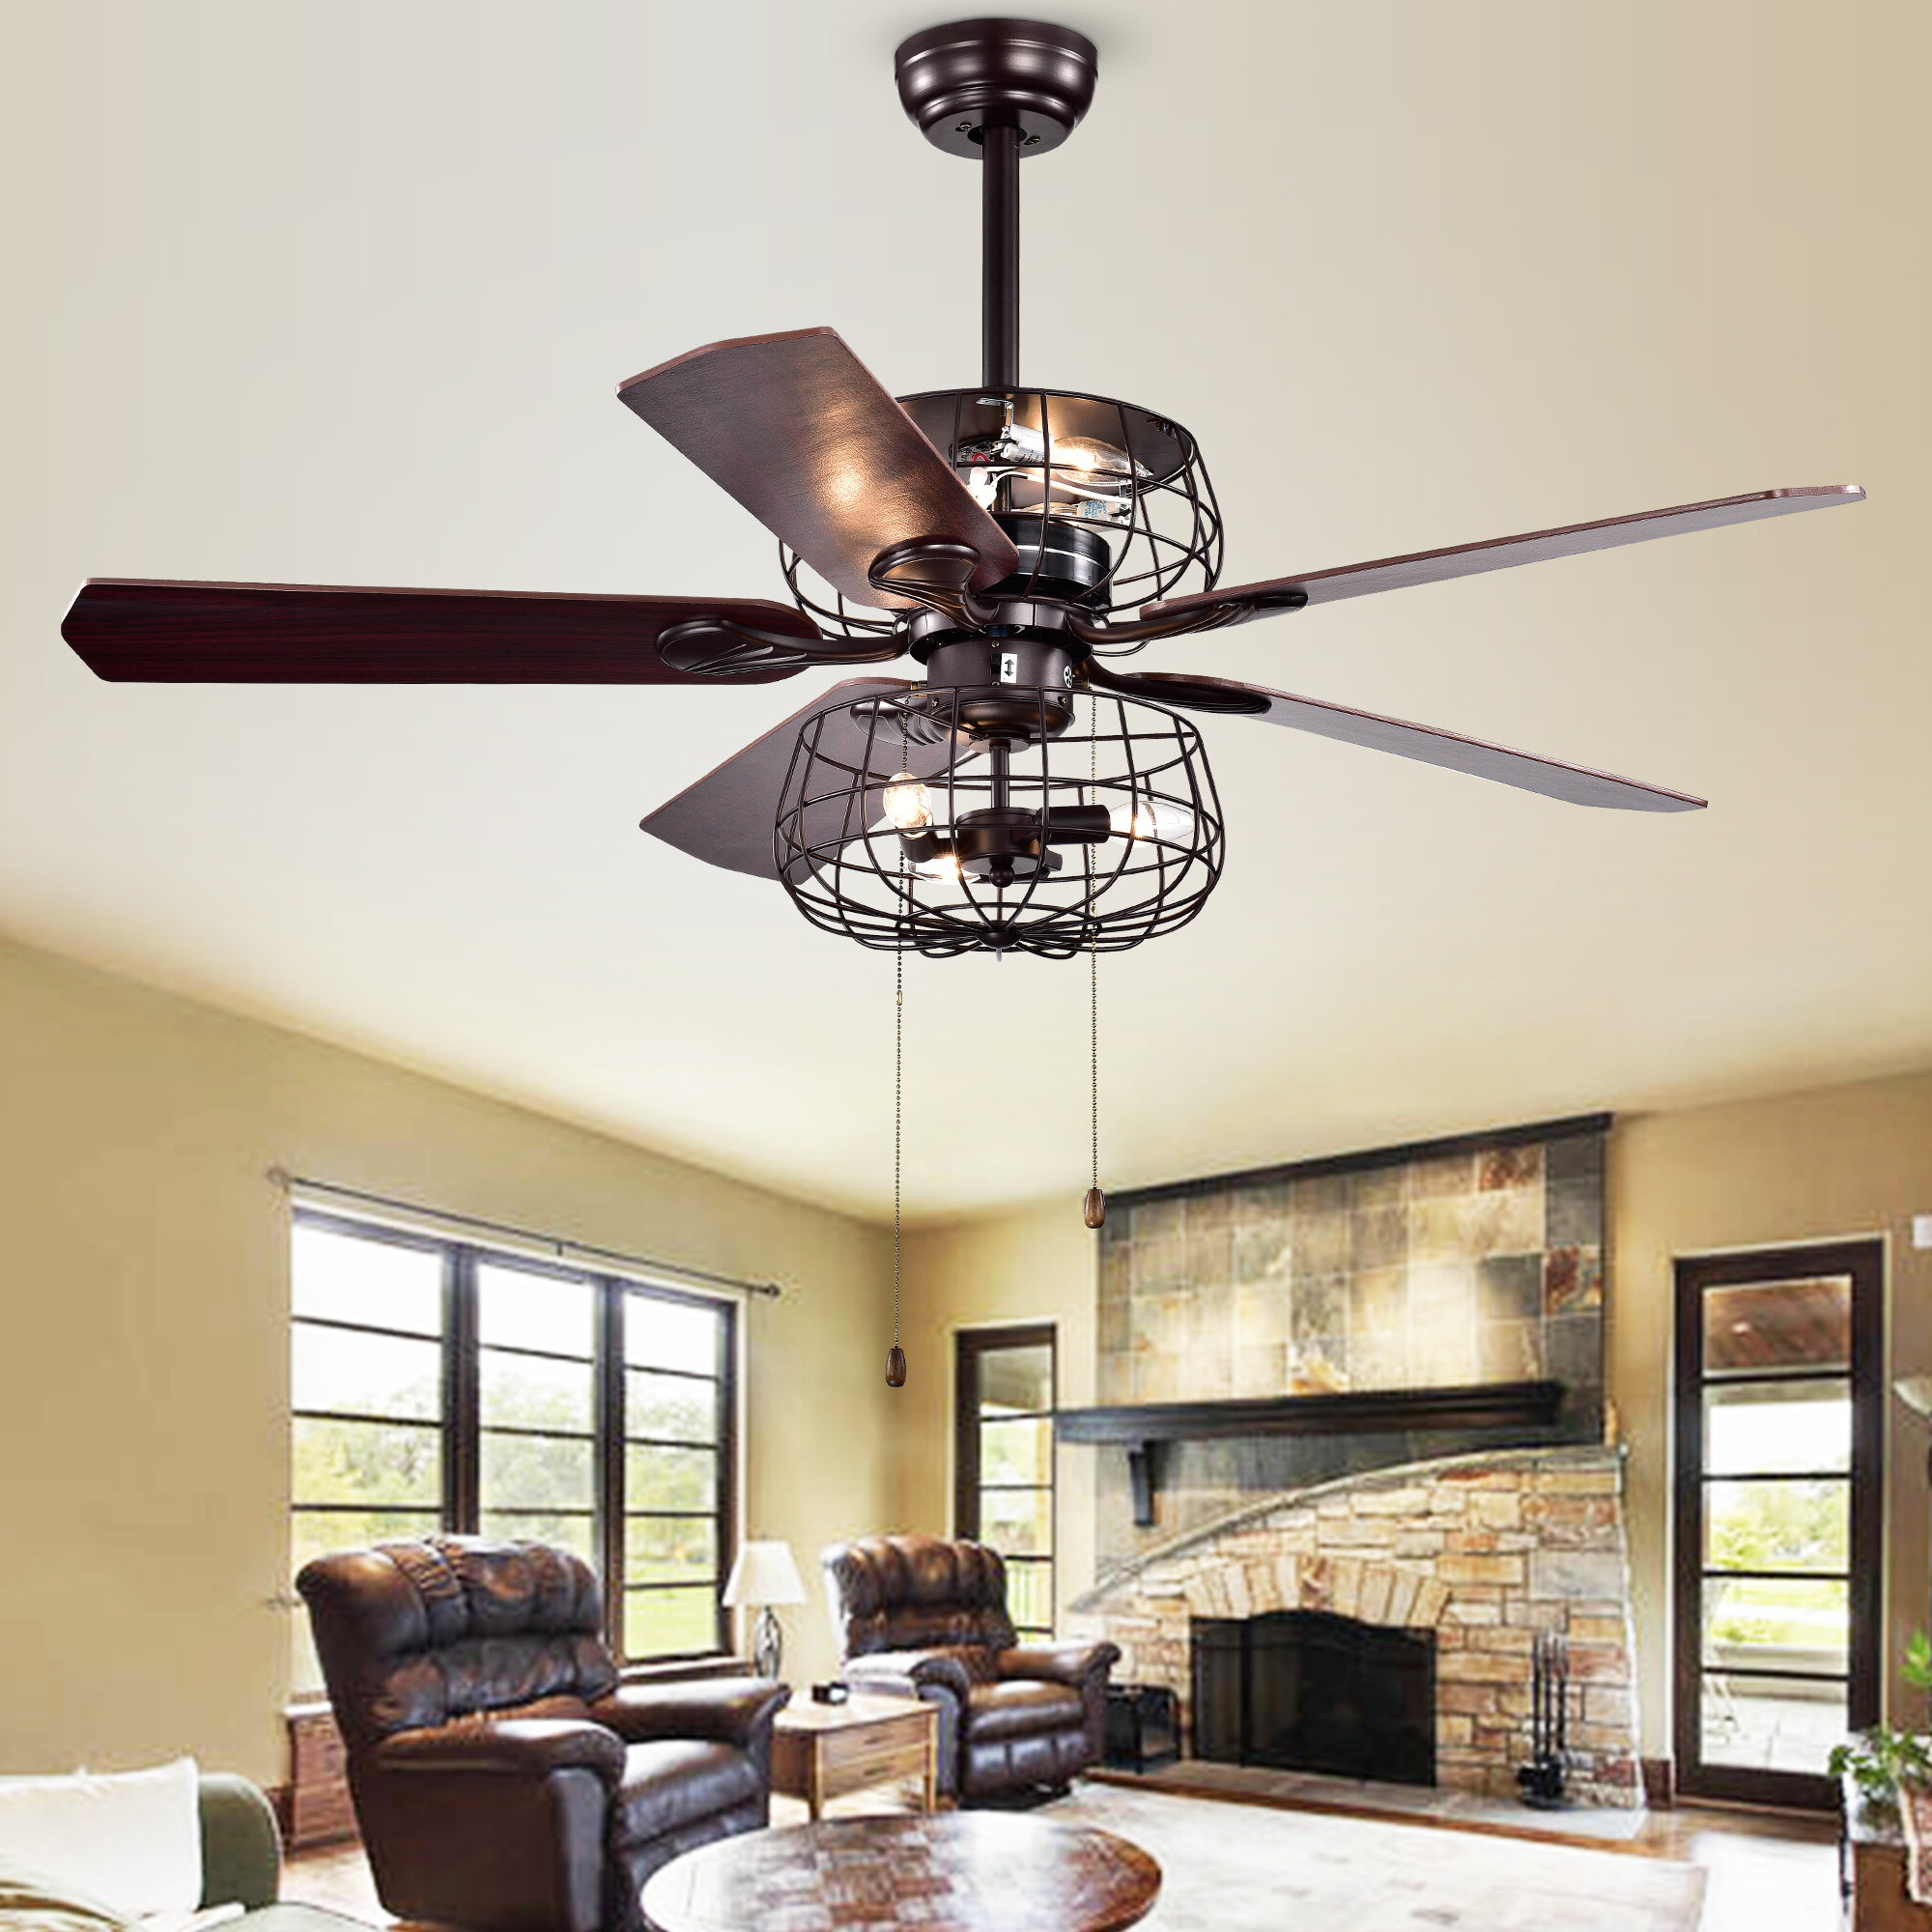 Kaiya 5 Blade Ceiling Fan, Light Kit Included With Regard To 2020 Marcoux 5 Blade Ceiling Fans (Gallery 9 of 20)